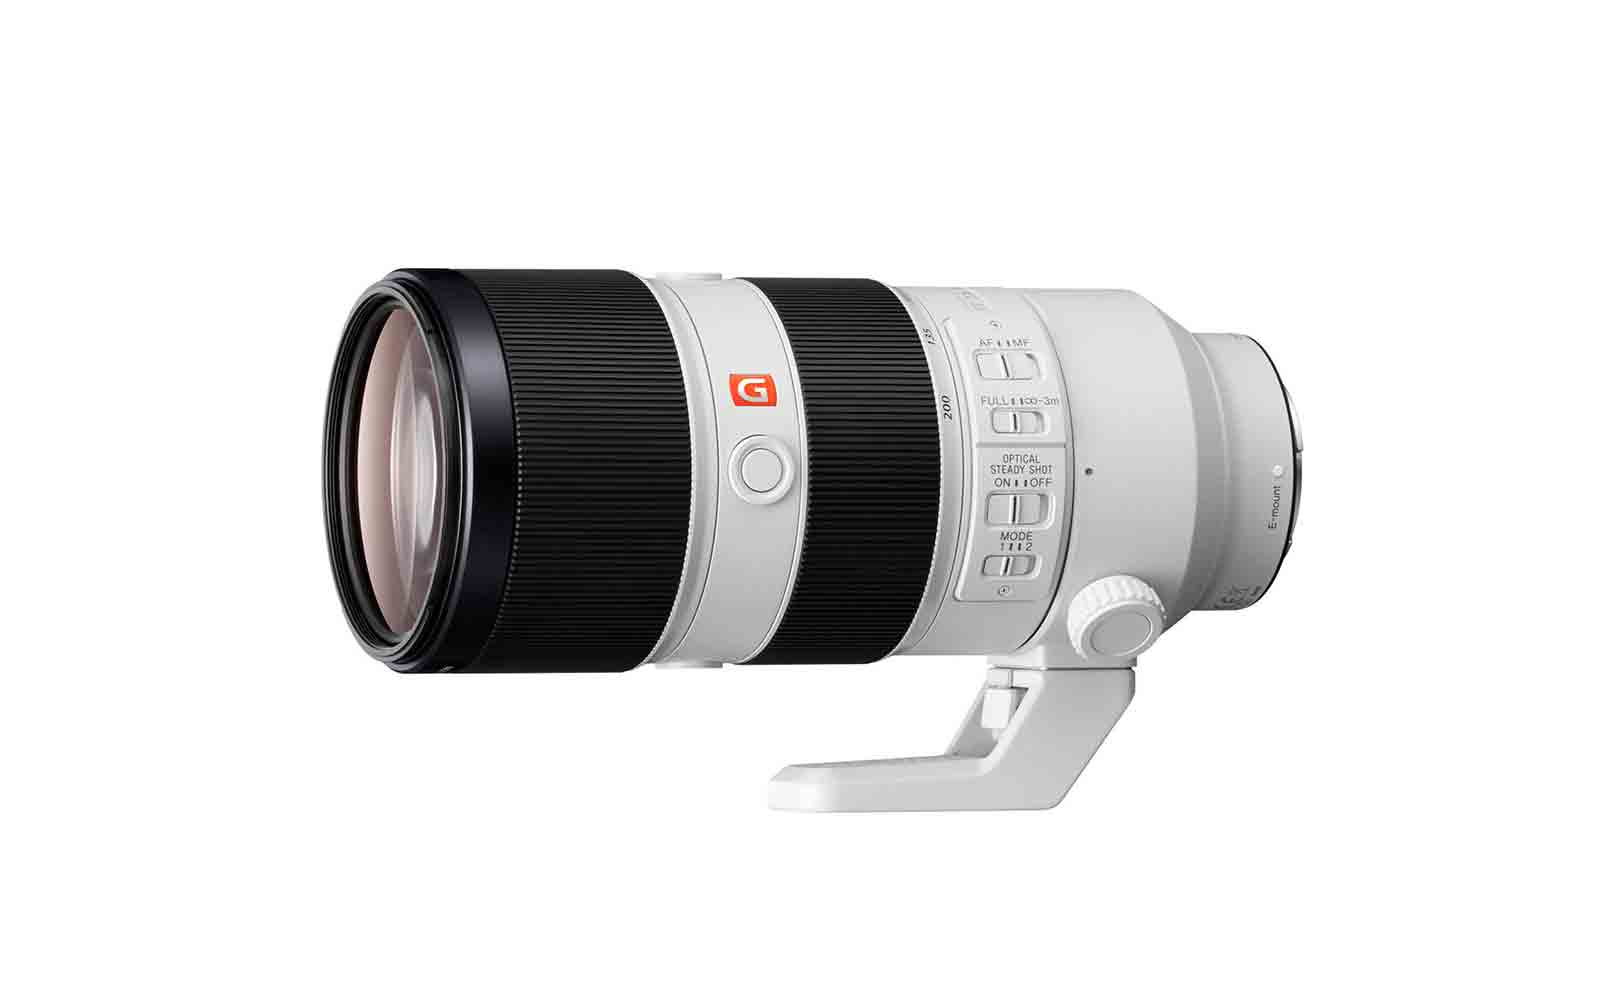 Sony FE 70-200mm f/2.8 Welab